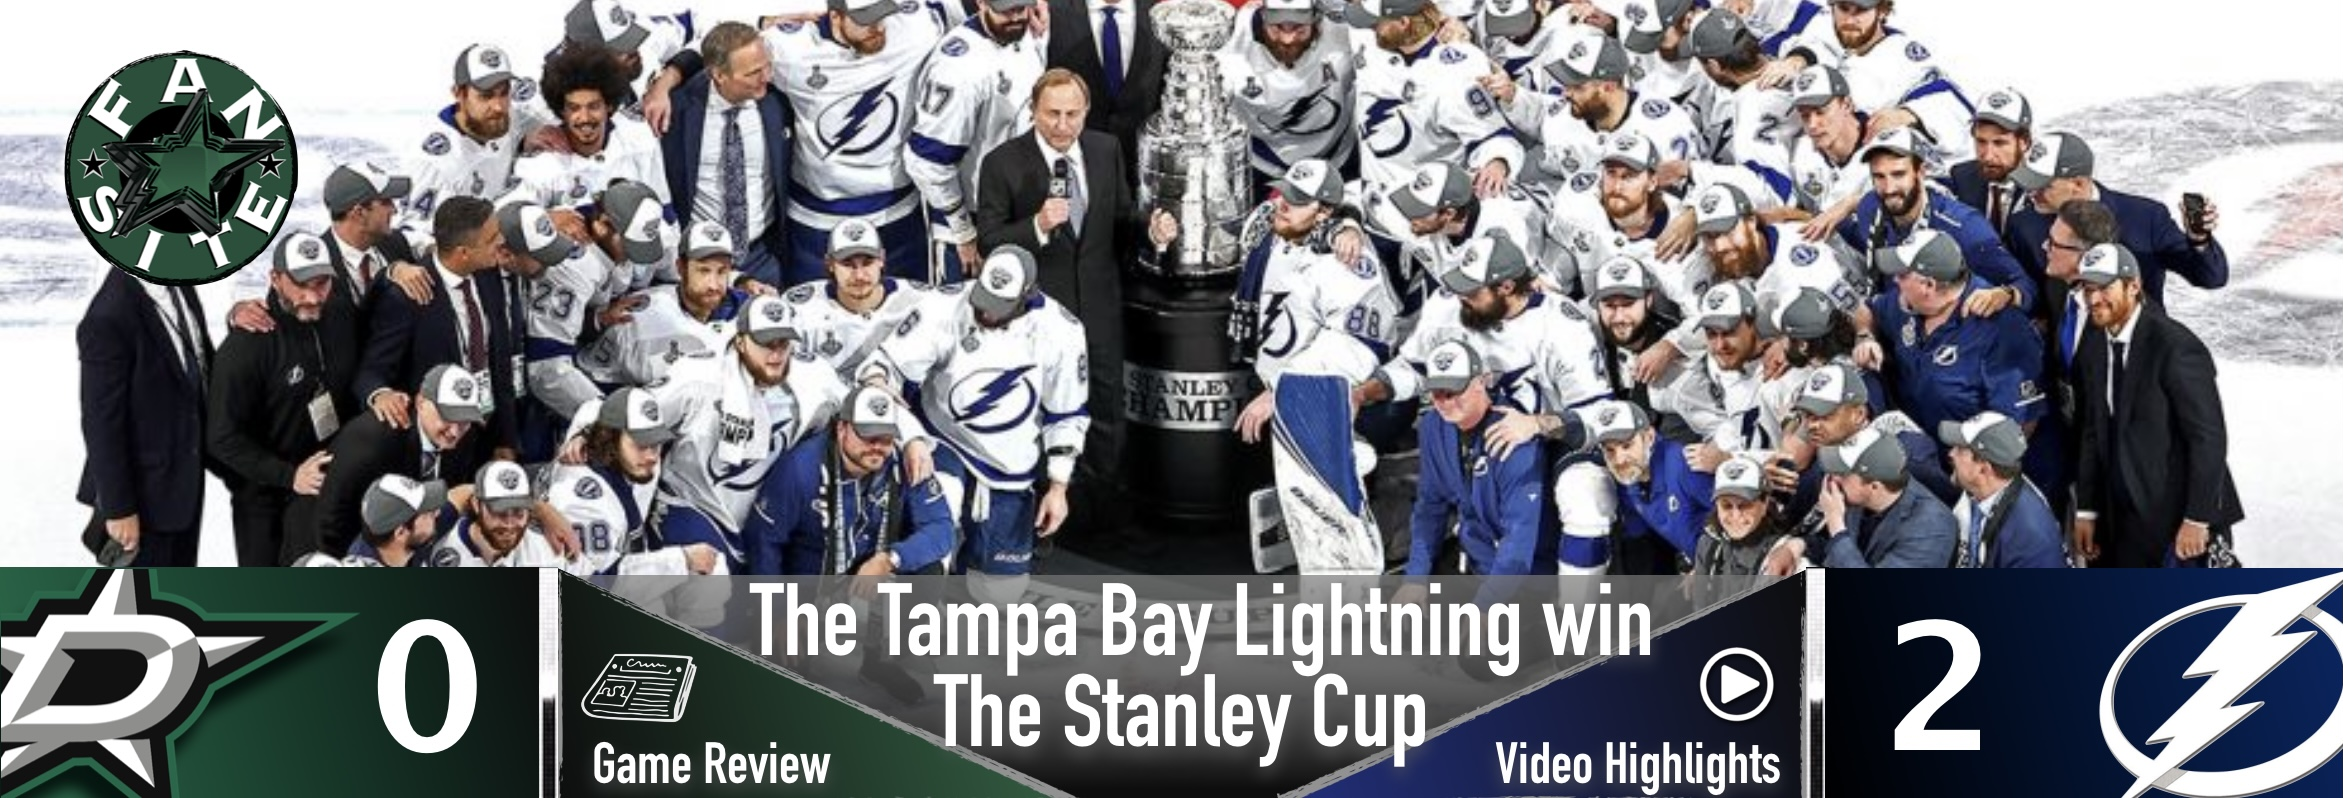 The Tampa Bay Lightning are the Stanley Cup Champions!